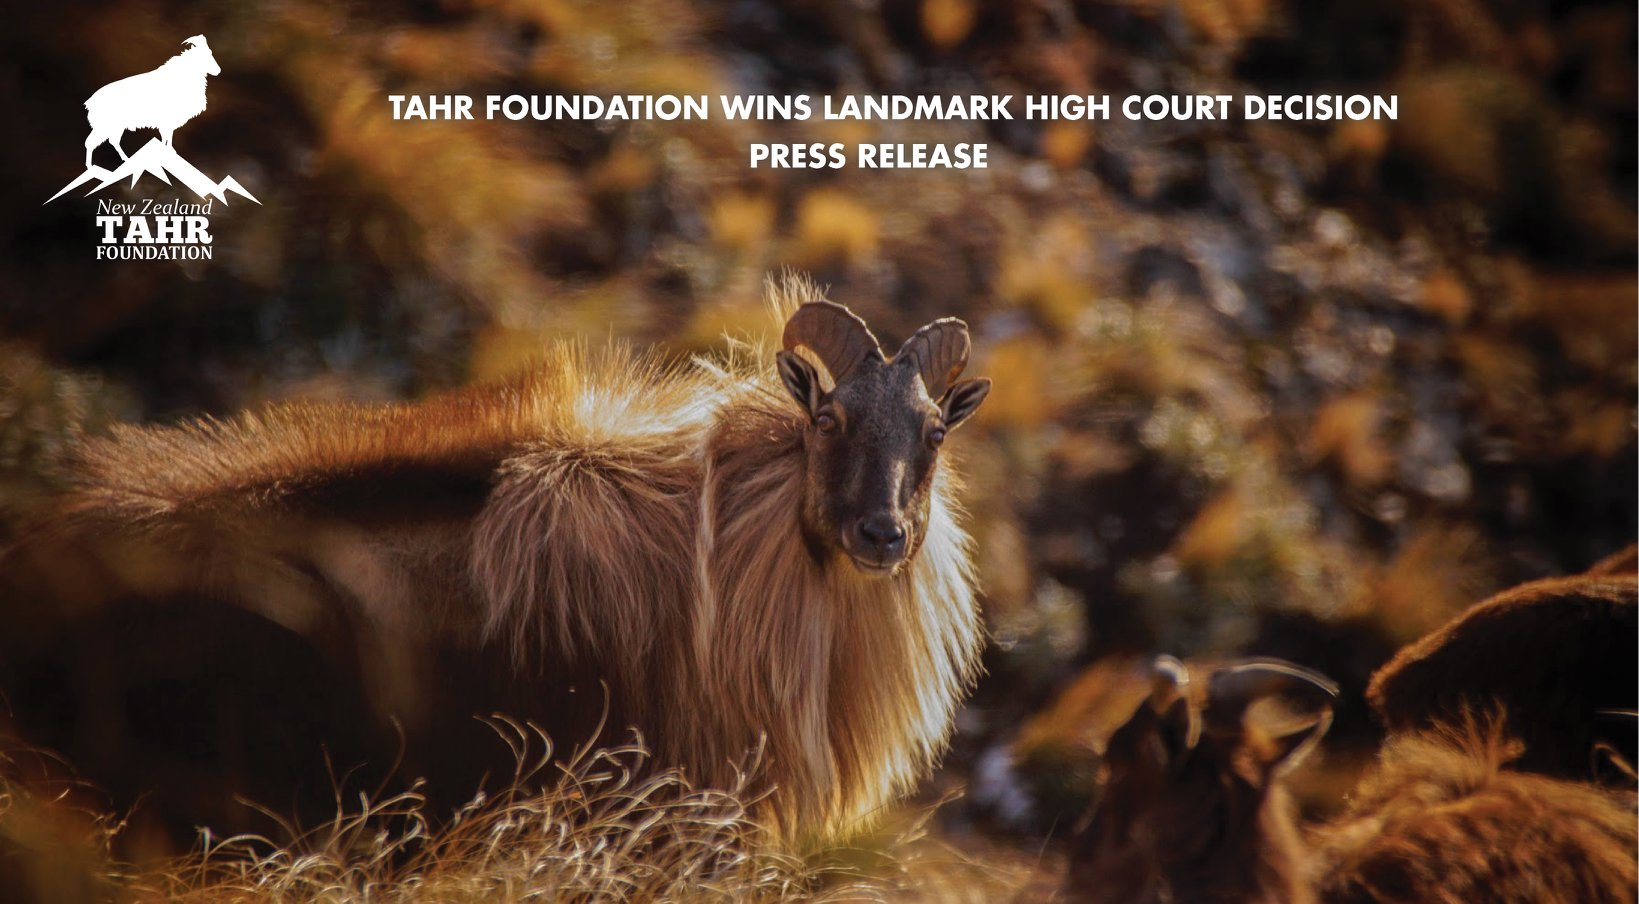 TAHR FOUNDATION WELCOMES LANDMARK HIGH COURT DECISION